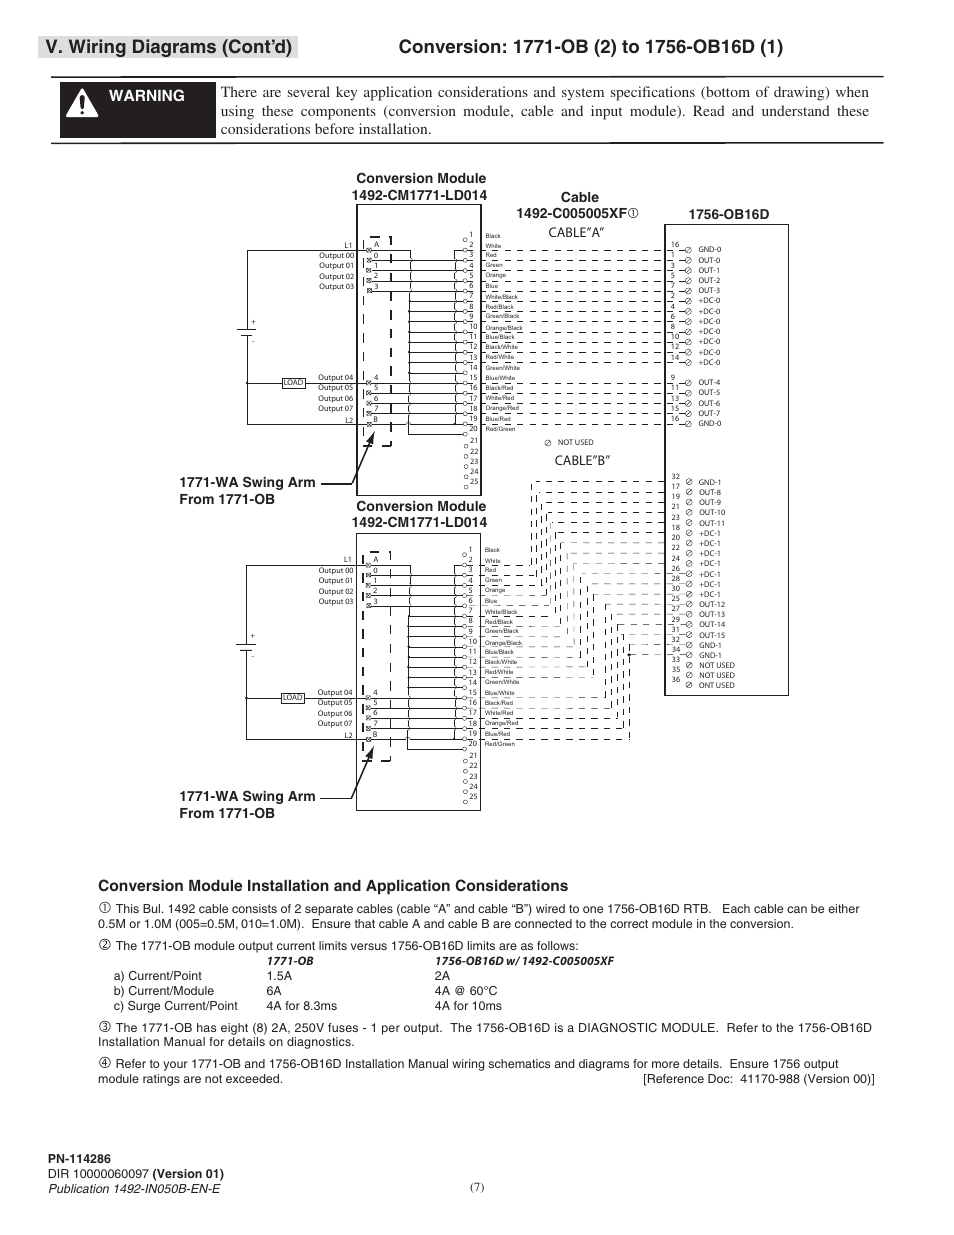 Rockwell Wiring Diagram Simple Hmi V Diagrams Contd Cableu201dau201d Cableu201db Automation Car